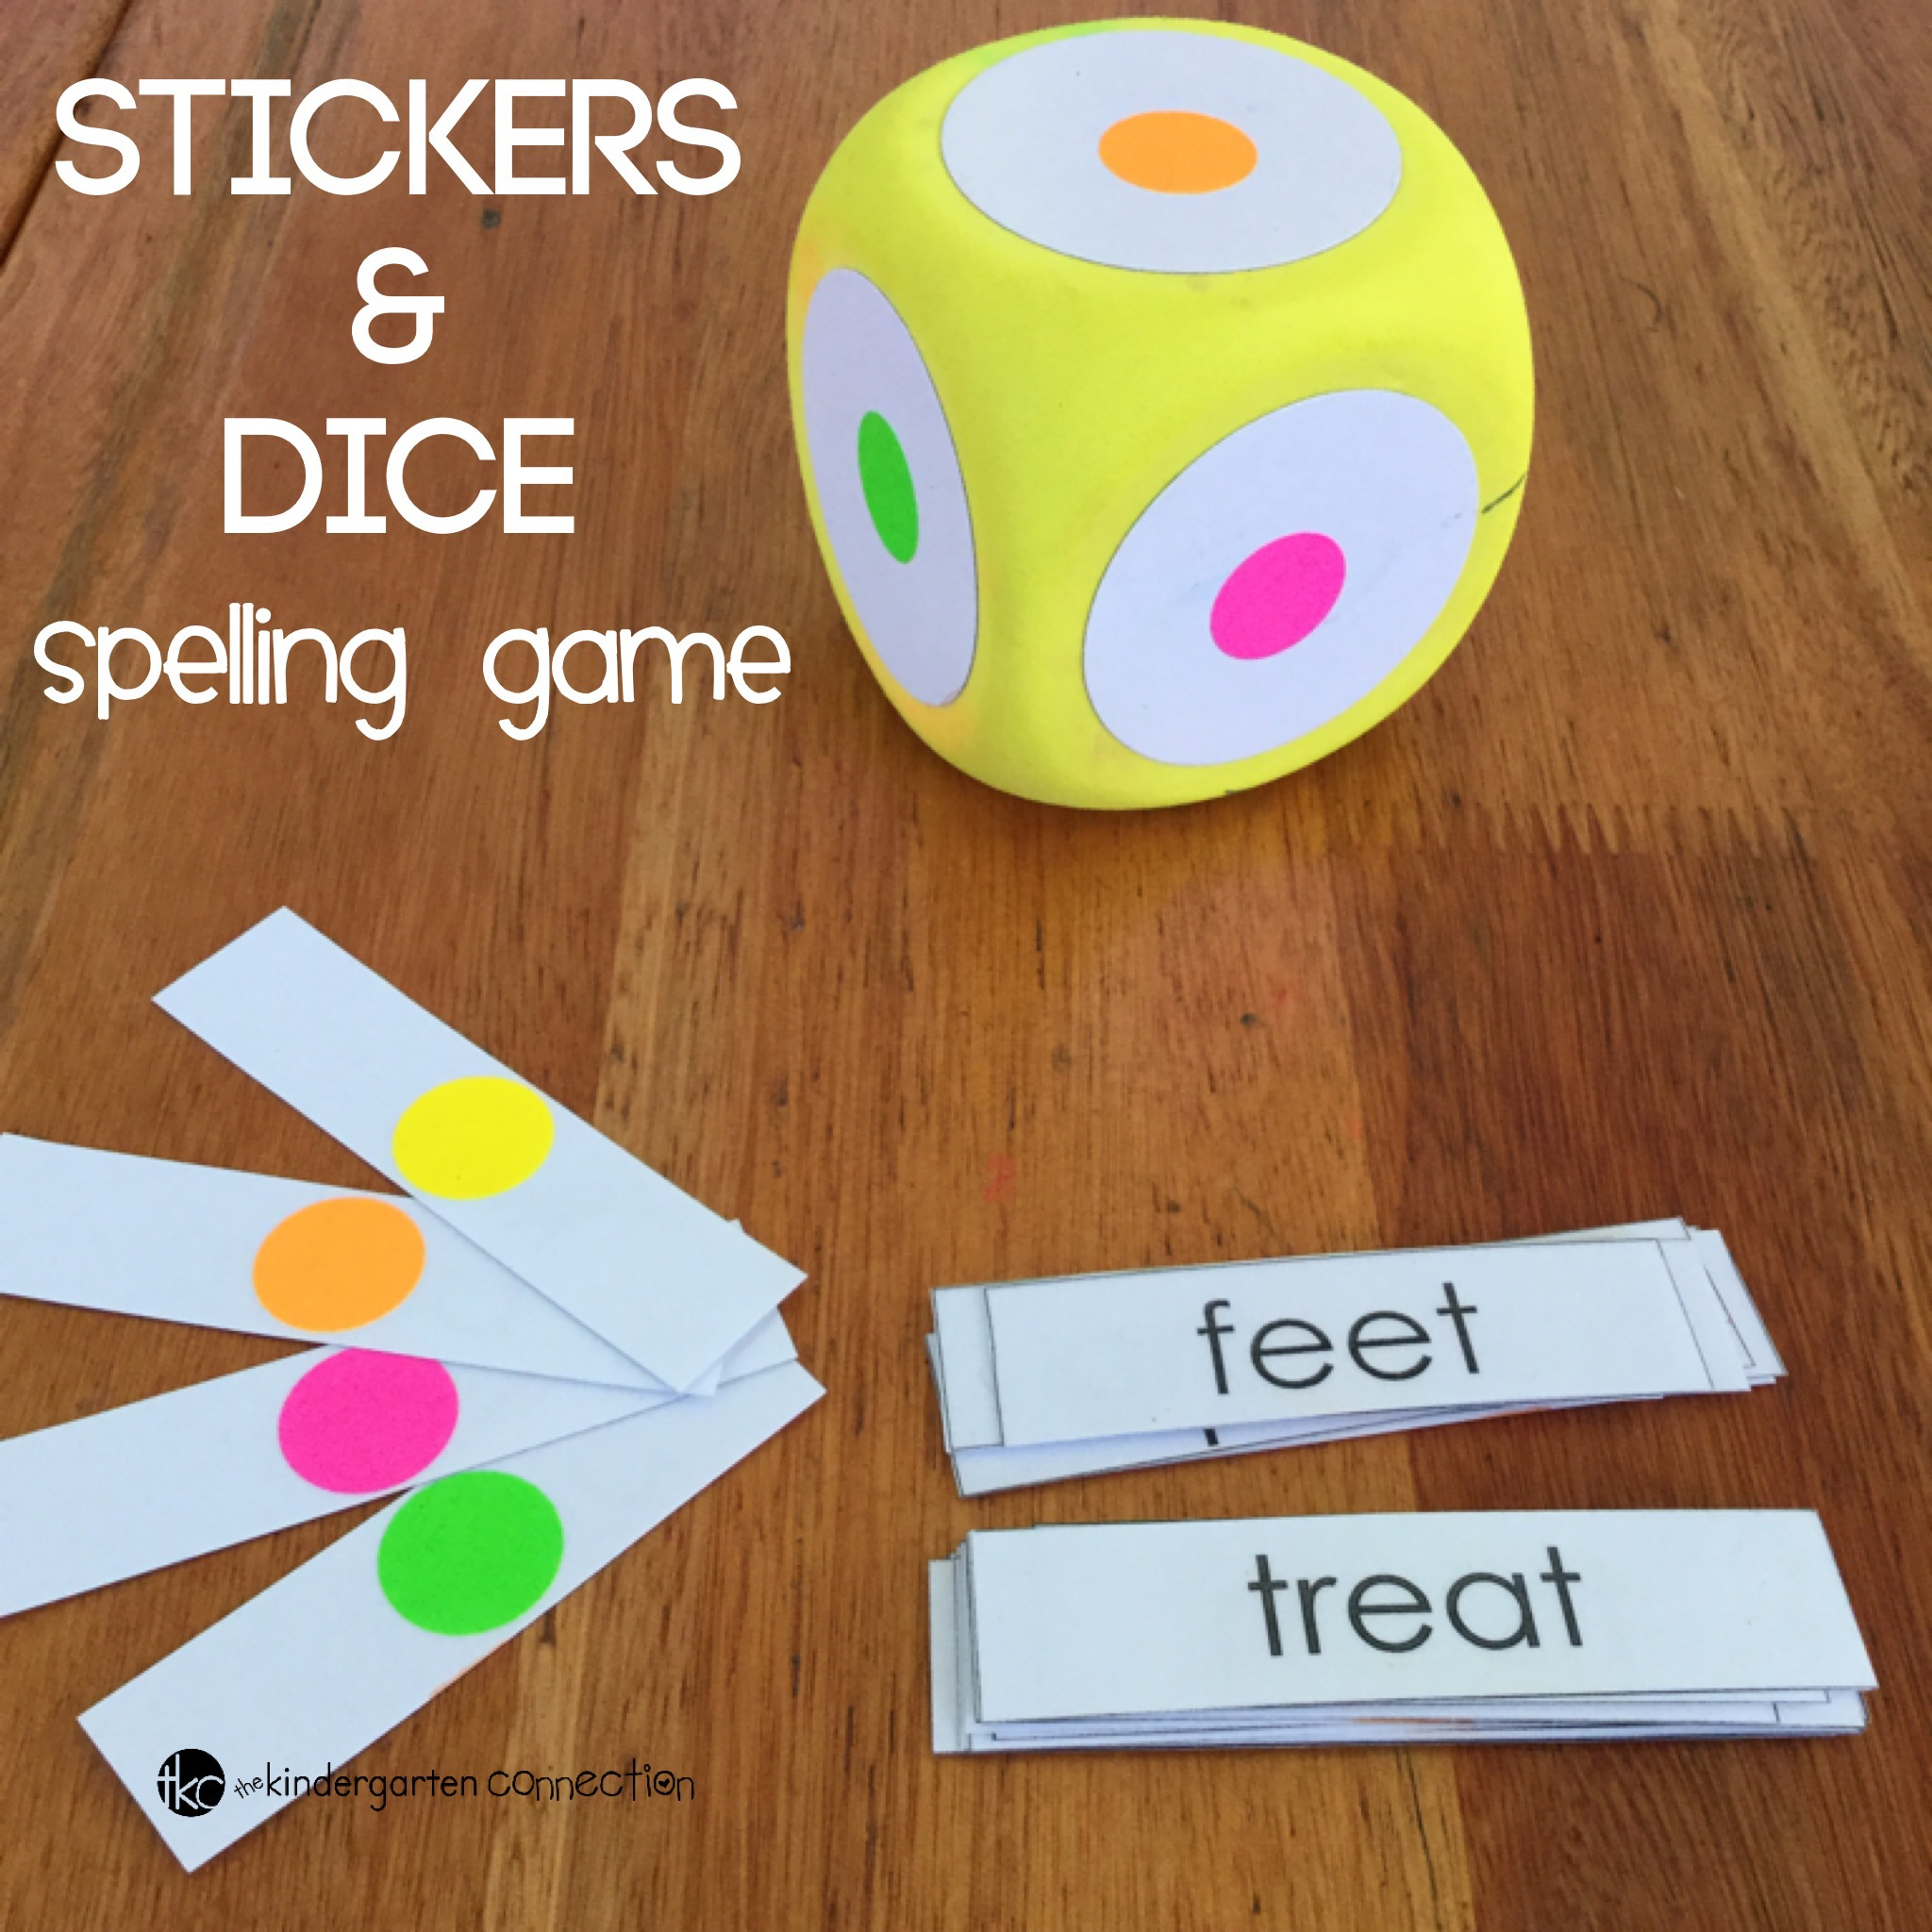 Here is a simple idea I use for revising spelling words, using stickers and a dice! Easily turn the task of revision into a game!